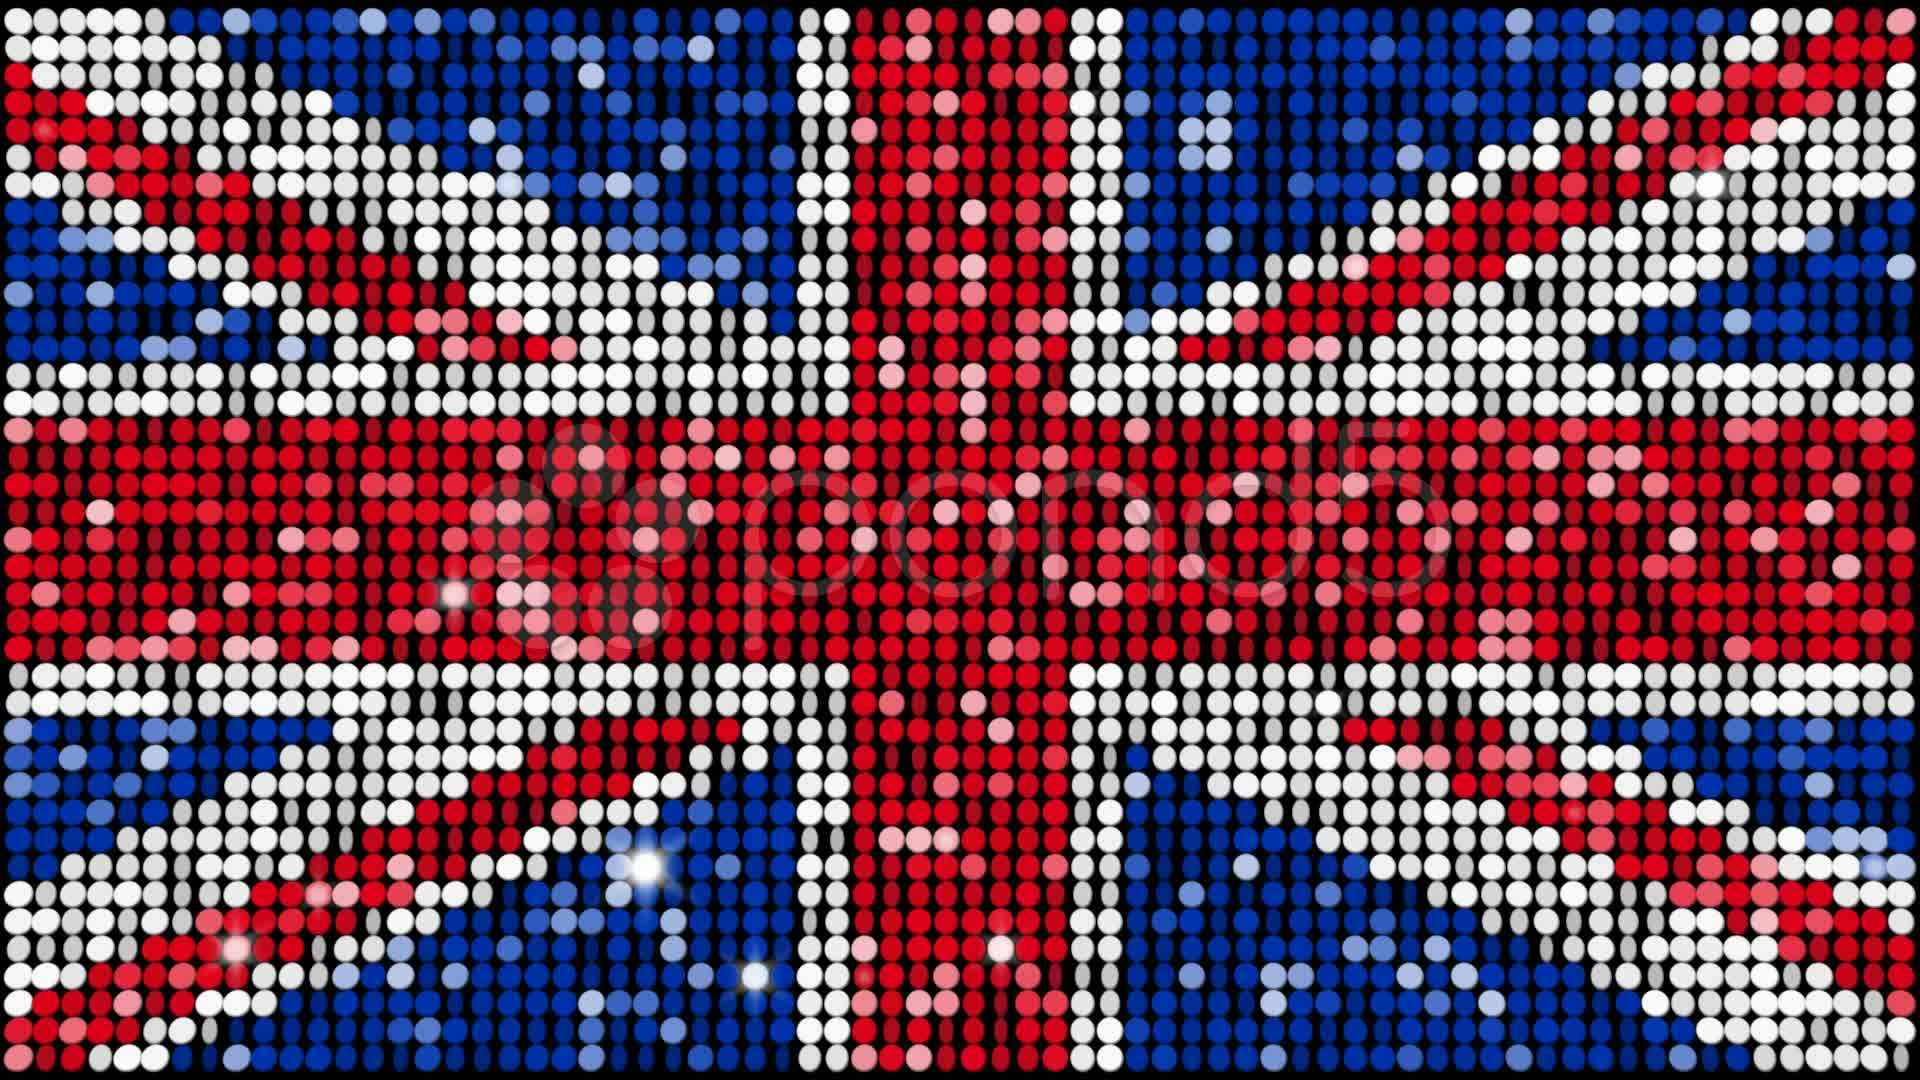 British flag full hd image wallpaper - Nice HD Wallpapers